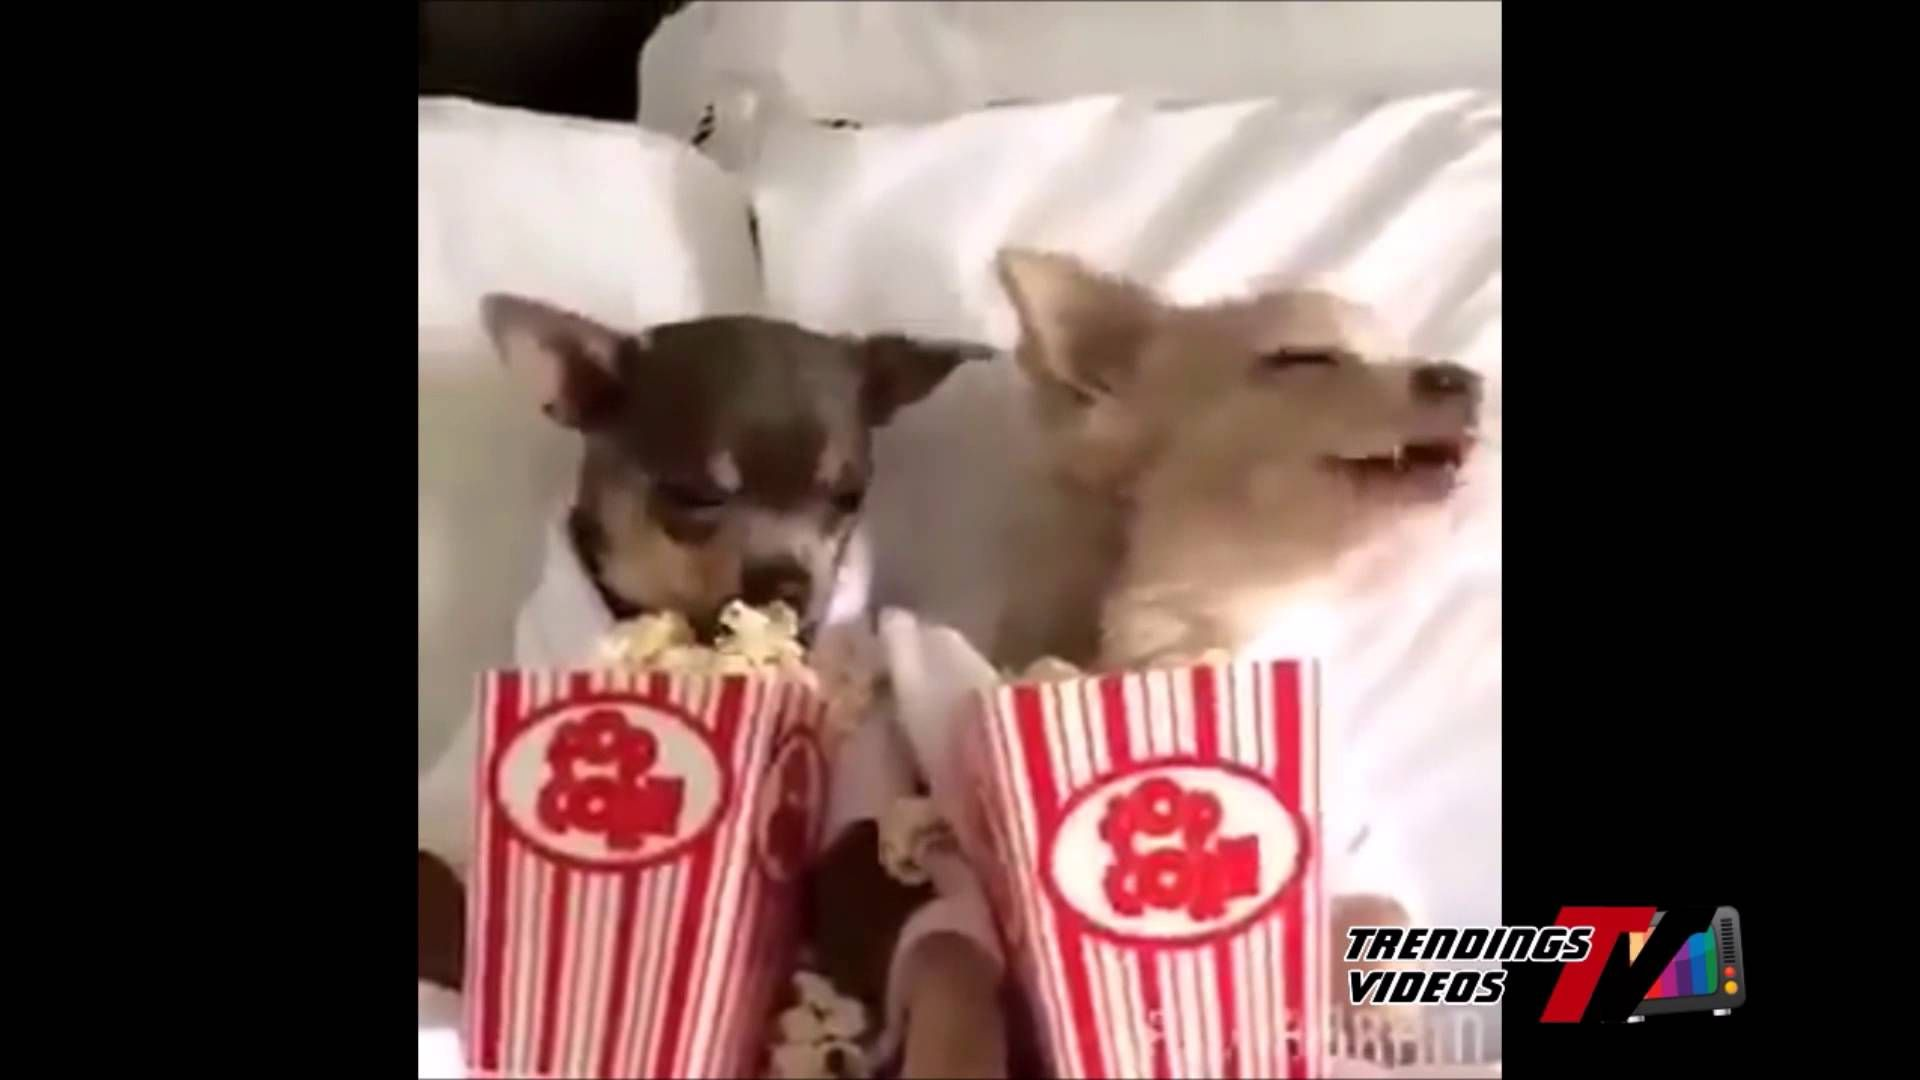 Dogs Eating Popcorn Youtube Dog Love Dogs Dog Eating